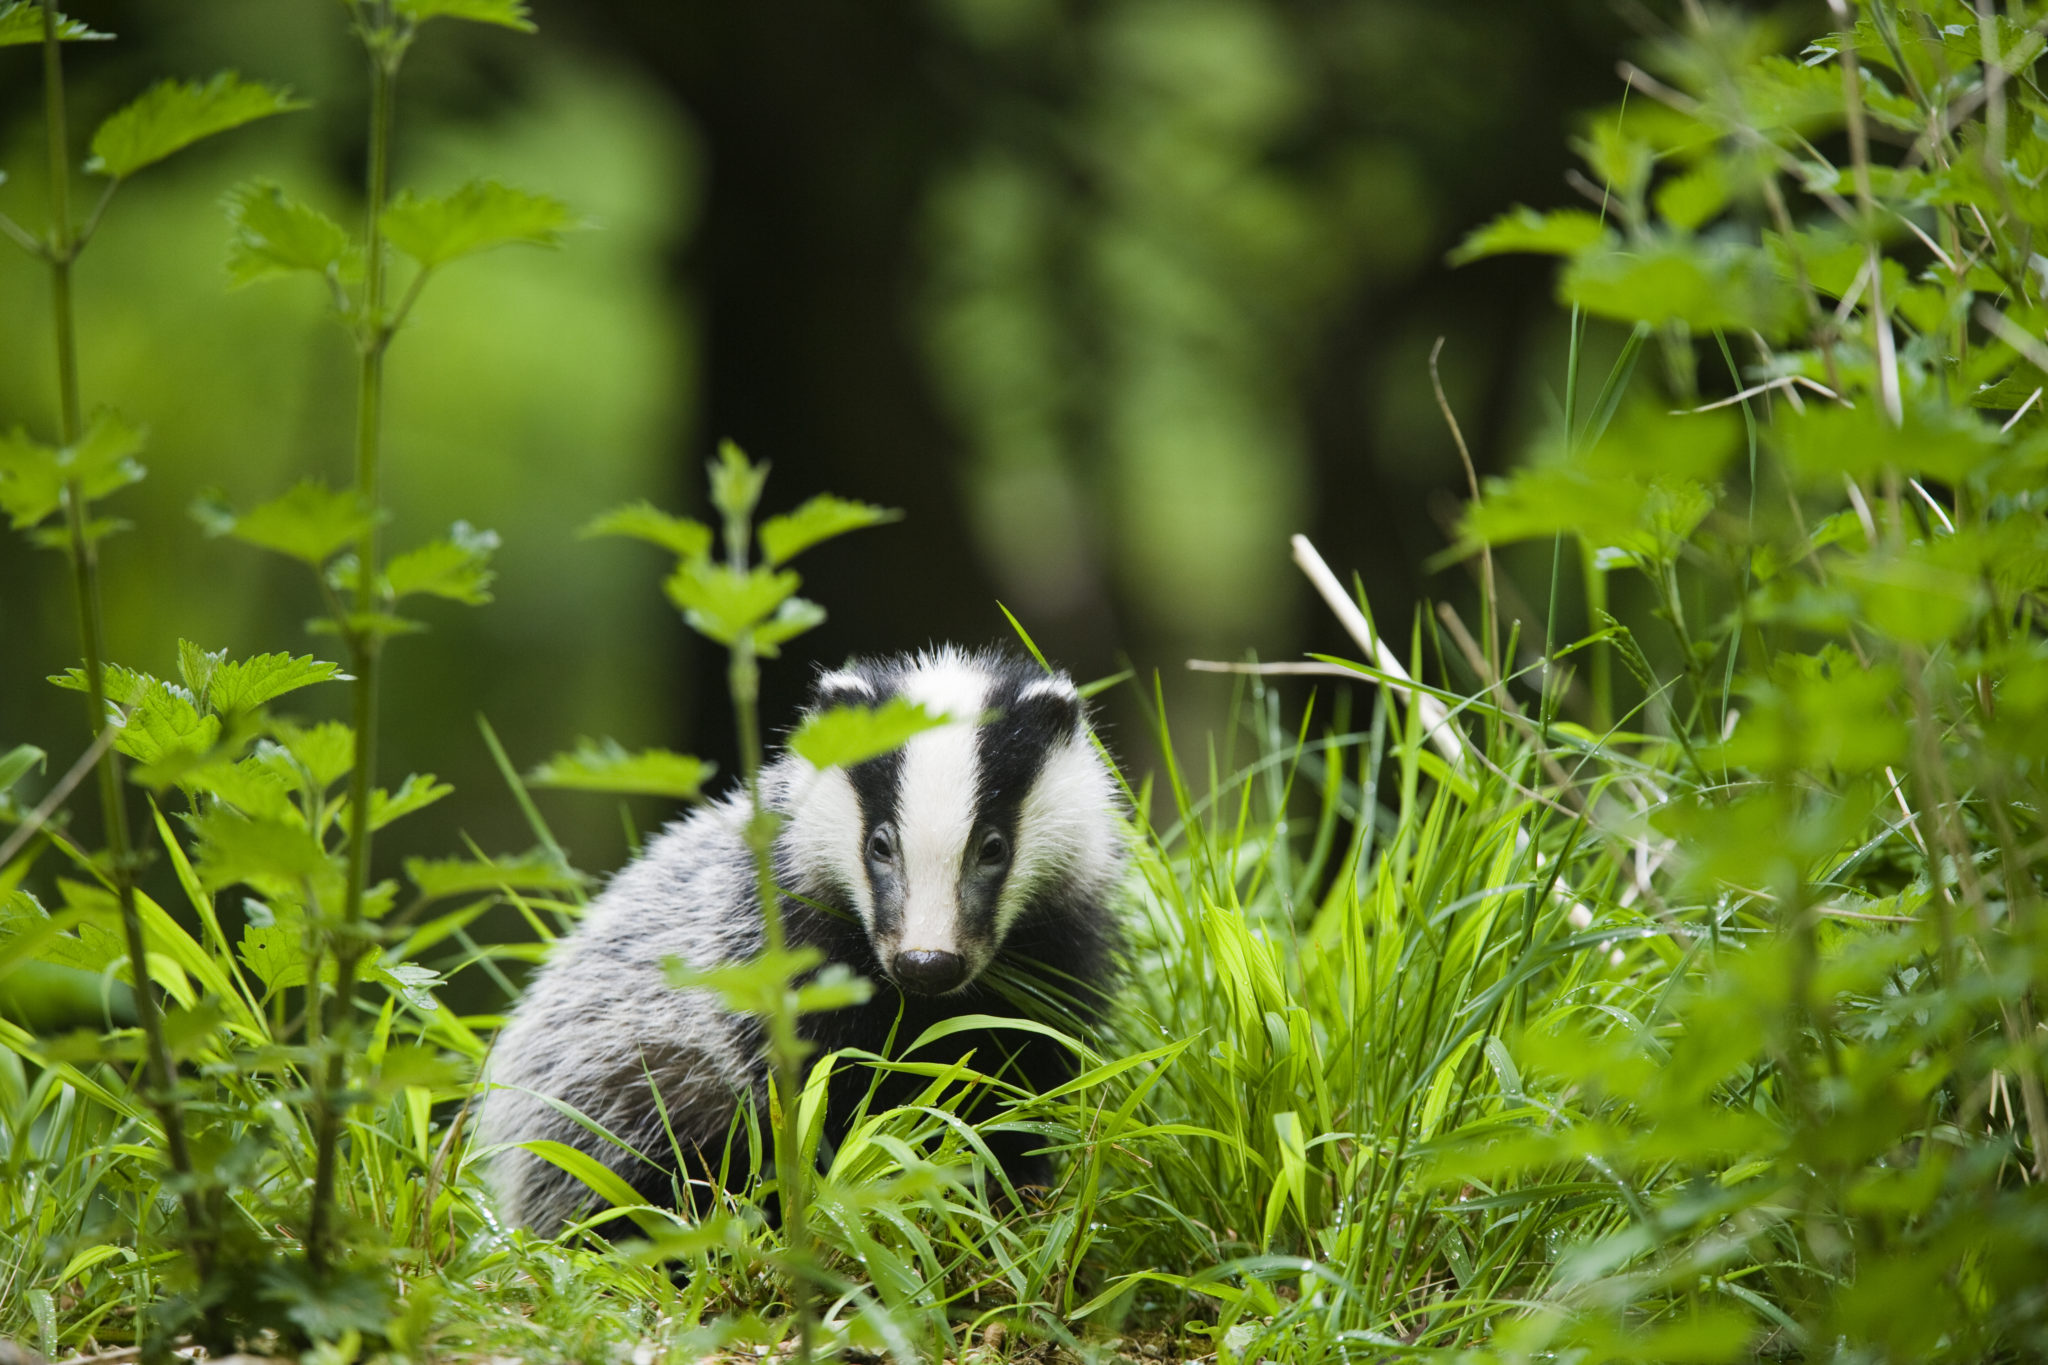 European badger (Meles meles), young cub foraging in undergrowth, England, UK ©Elliott Neap